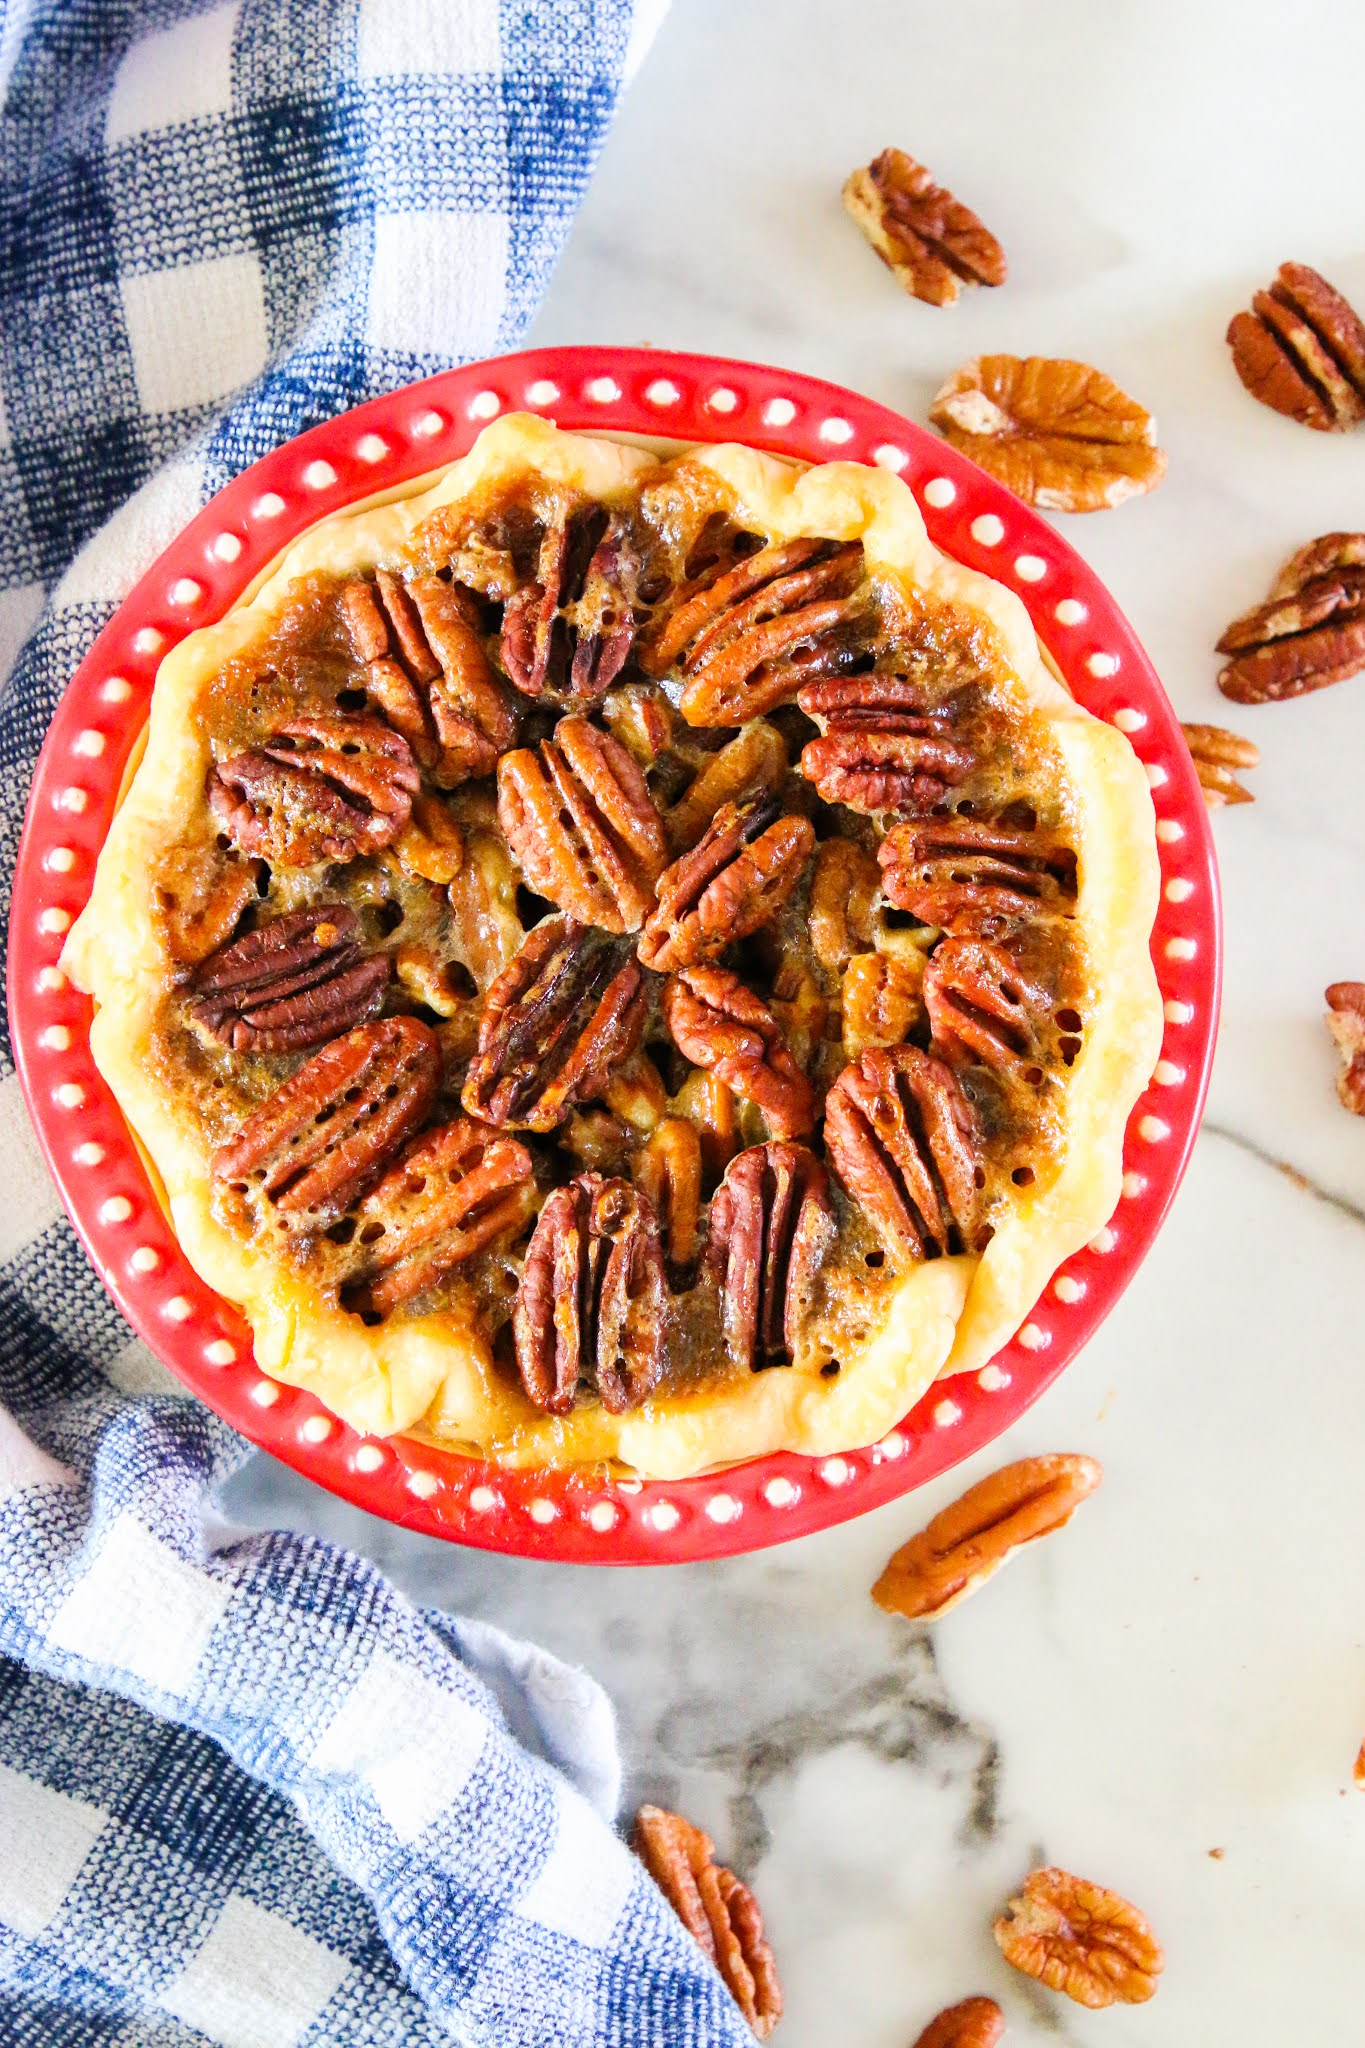 Pecan pie in a red pie dish with a blue dish towel in the background.